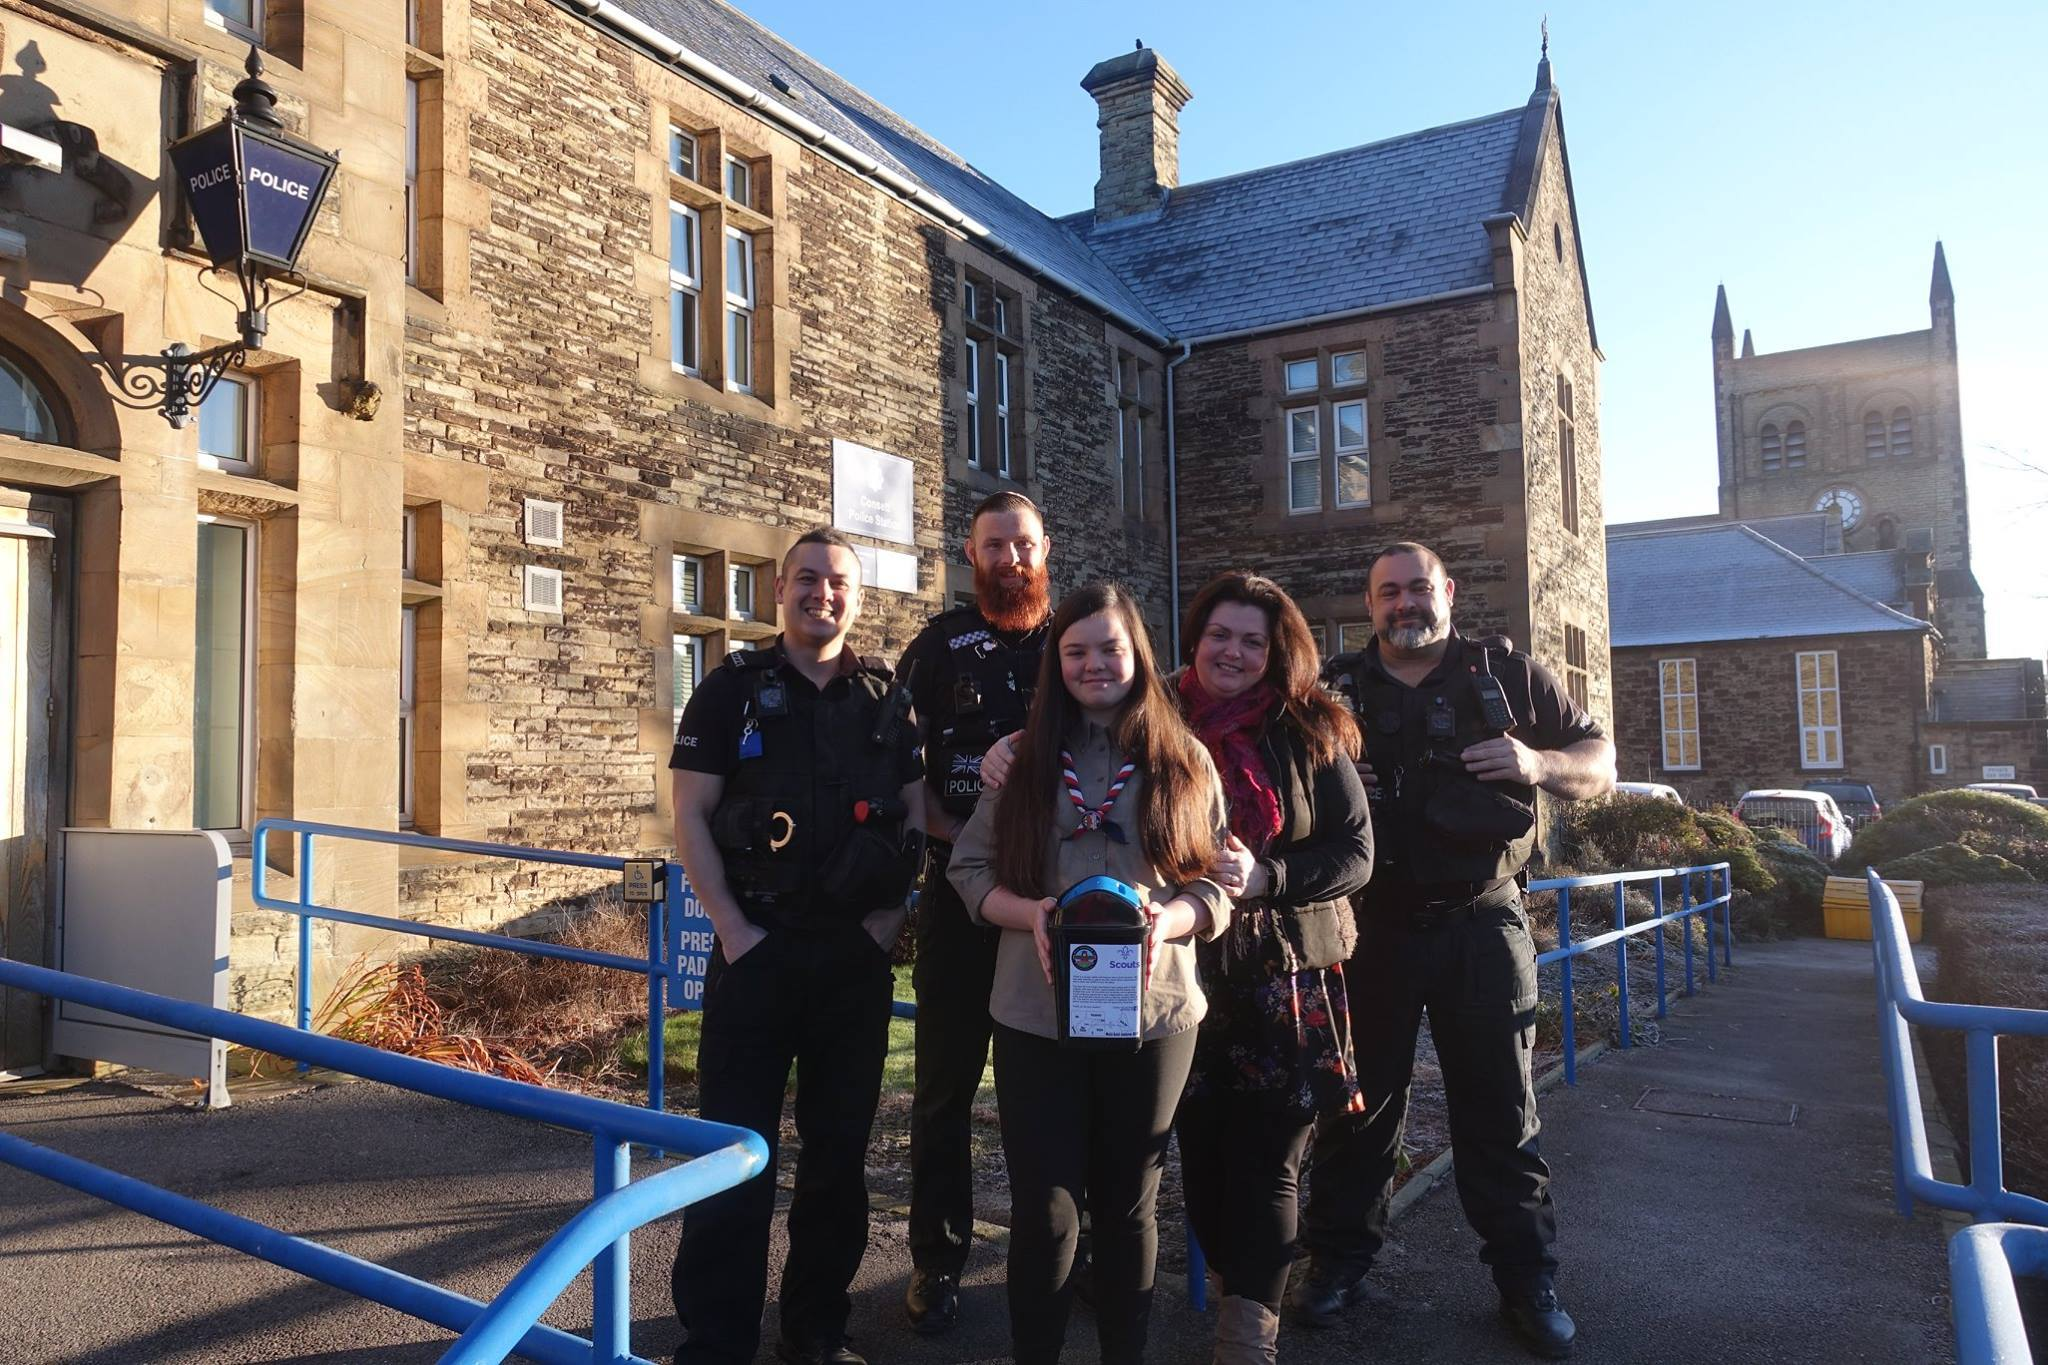 CHARITY HELP: Pictured, from left, PC John Gordon, PC Carly Symes and PC Lee Jackson with Chloe and Katy Keogan at Consett Police Station in Parliament Street